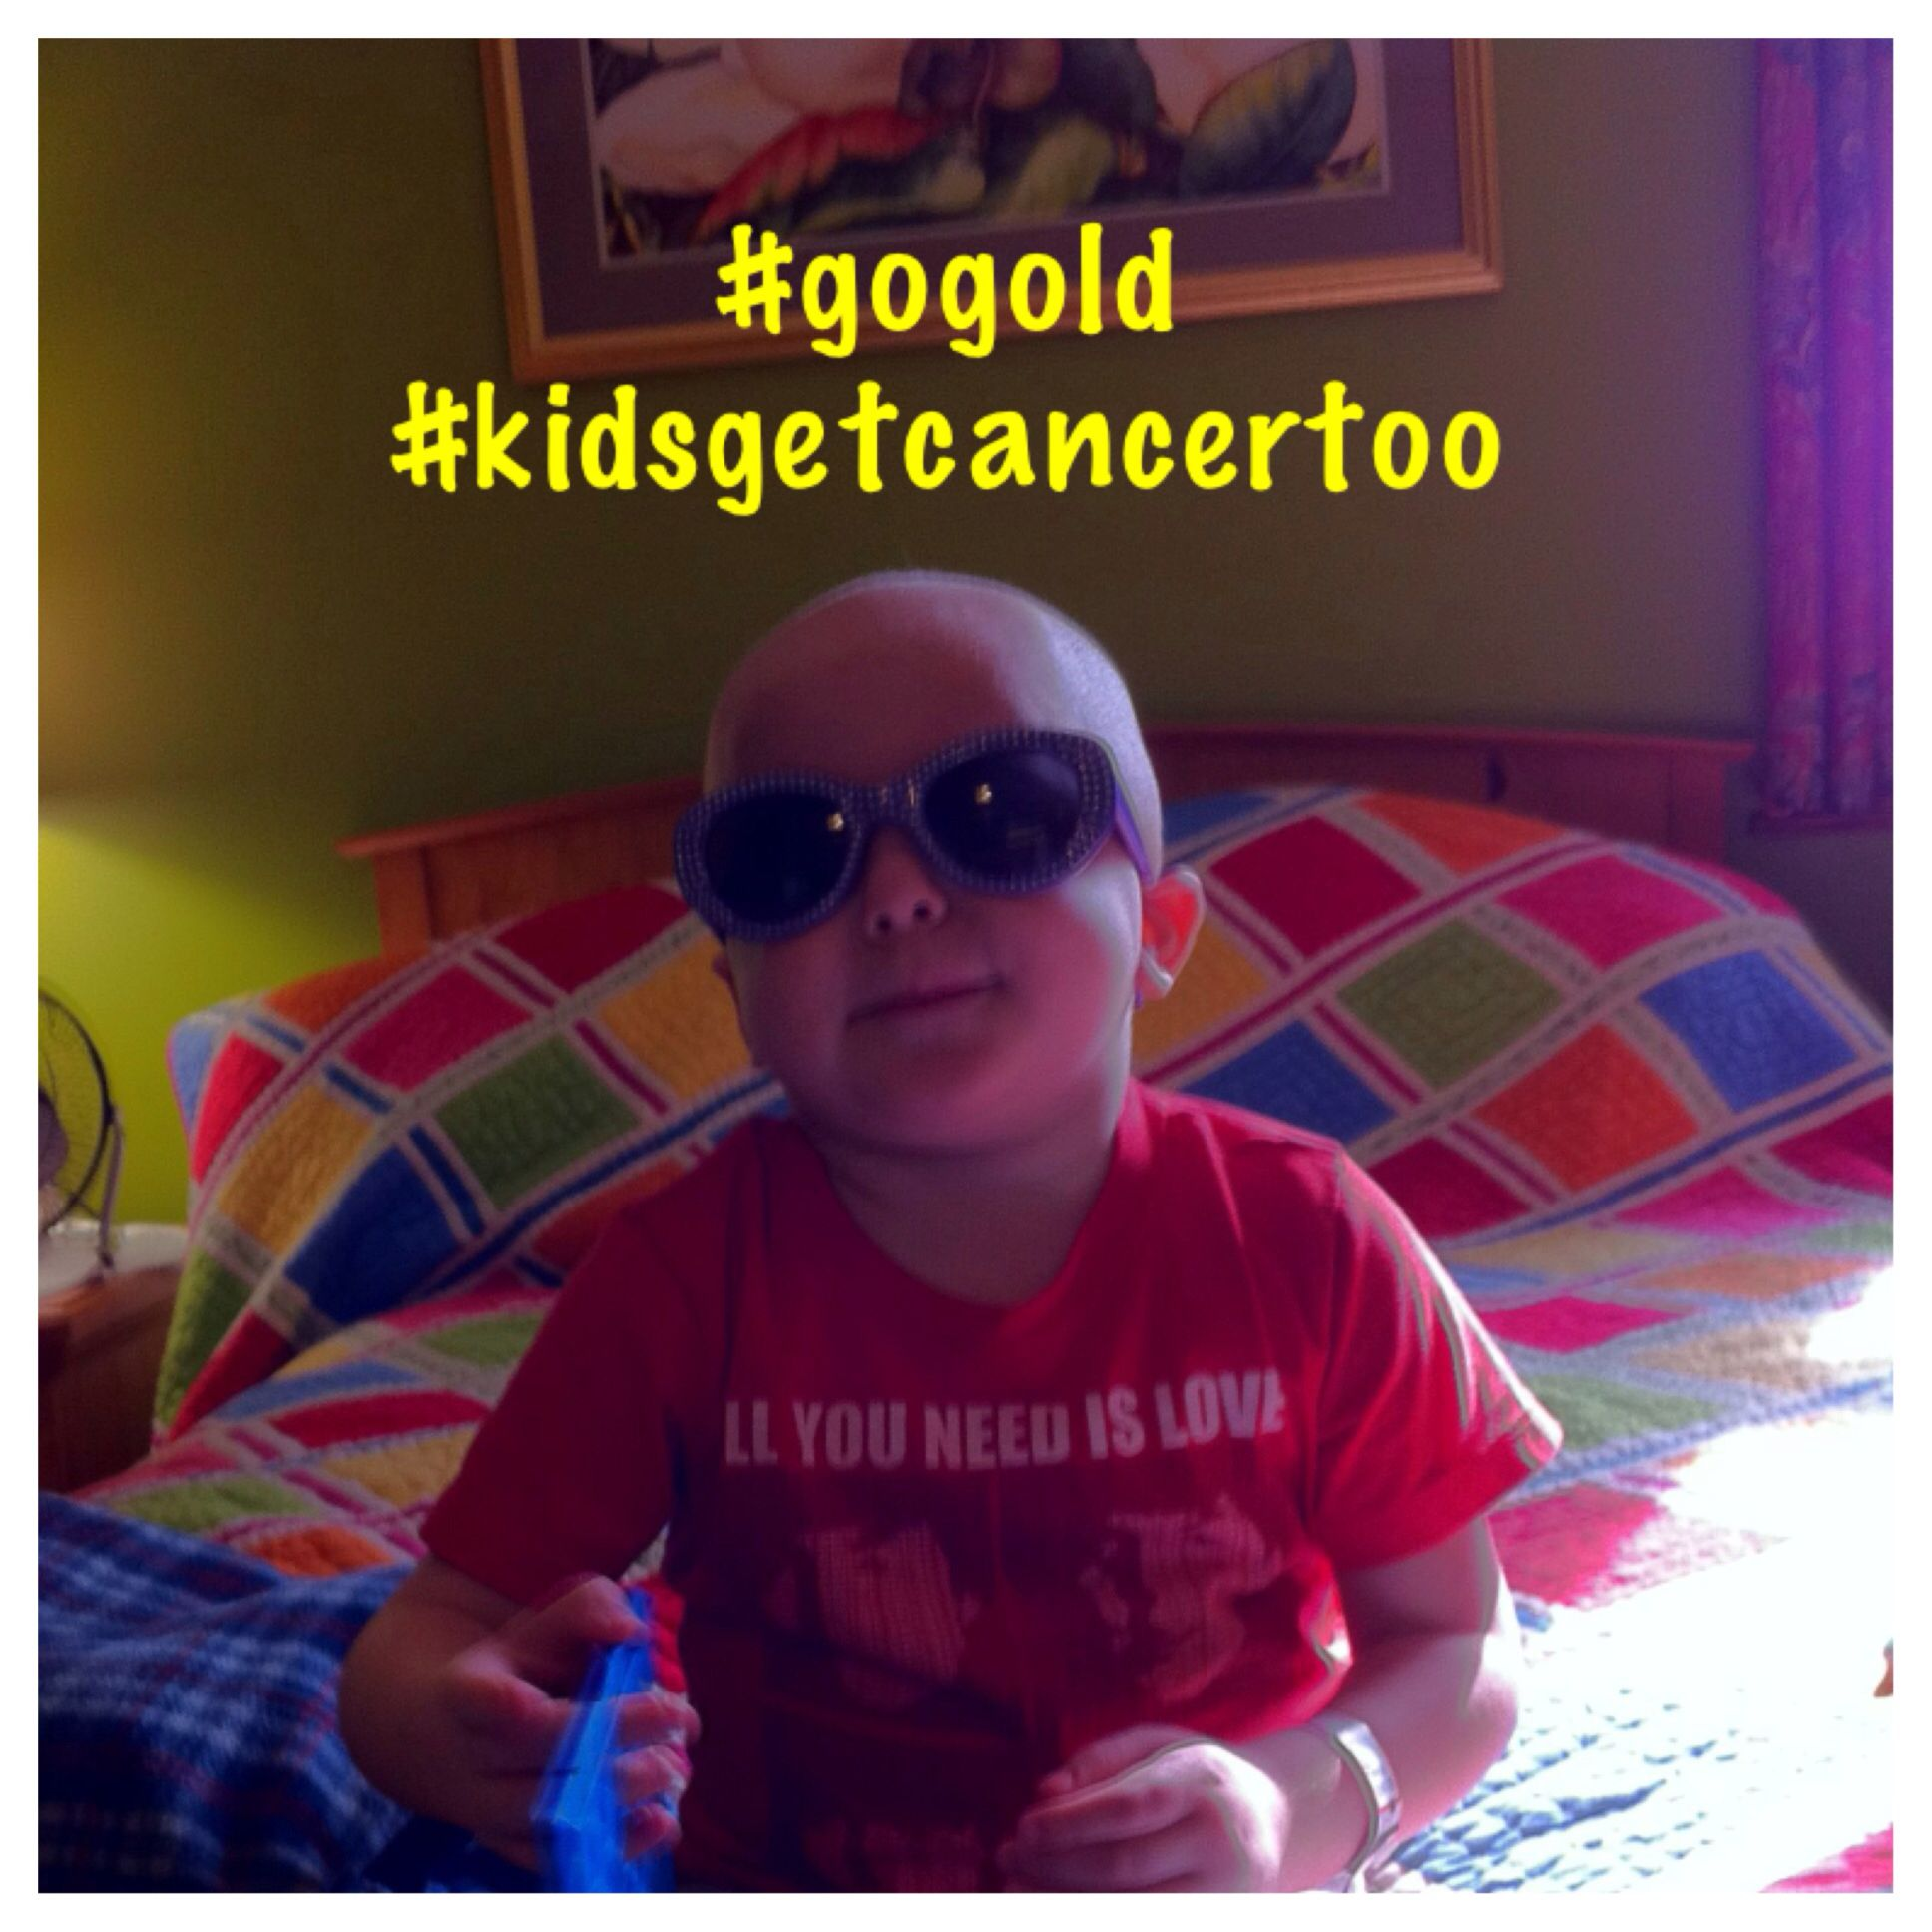 Childhood Cancer Awareness Team Lucy On Facebook 2 Kids A Taco